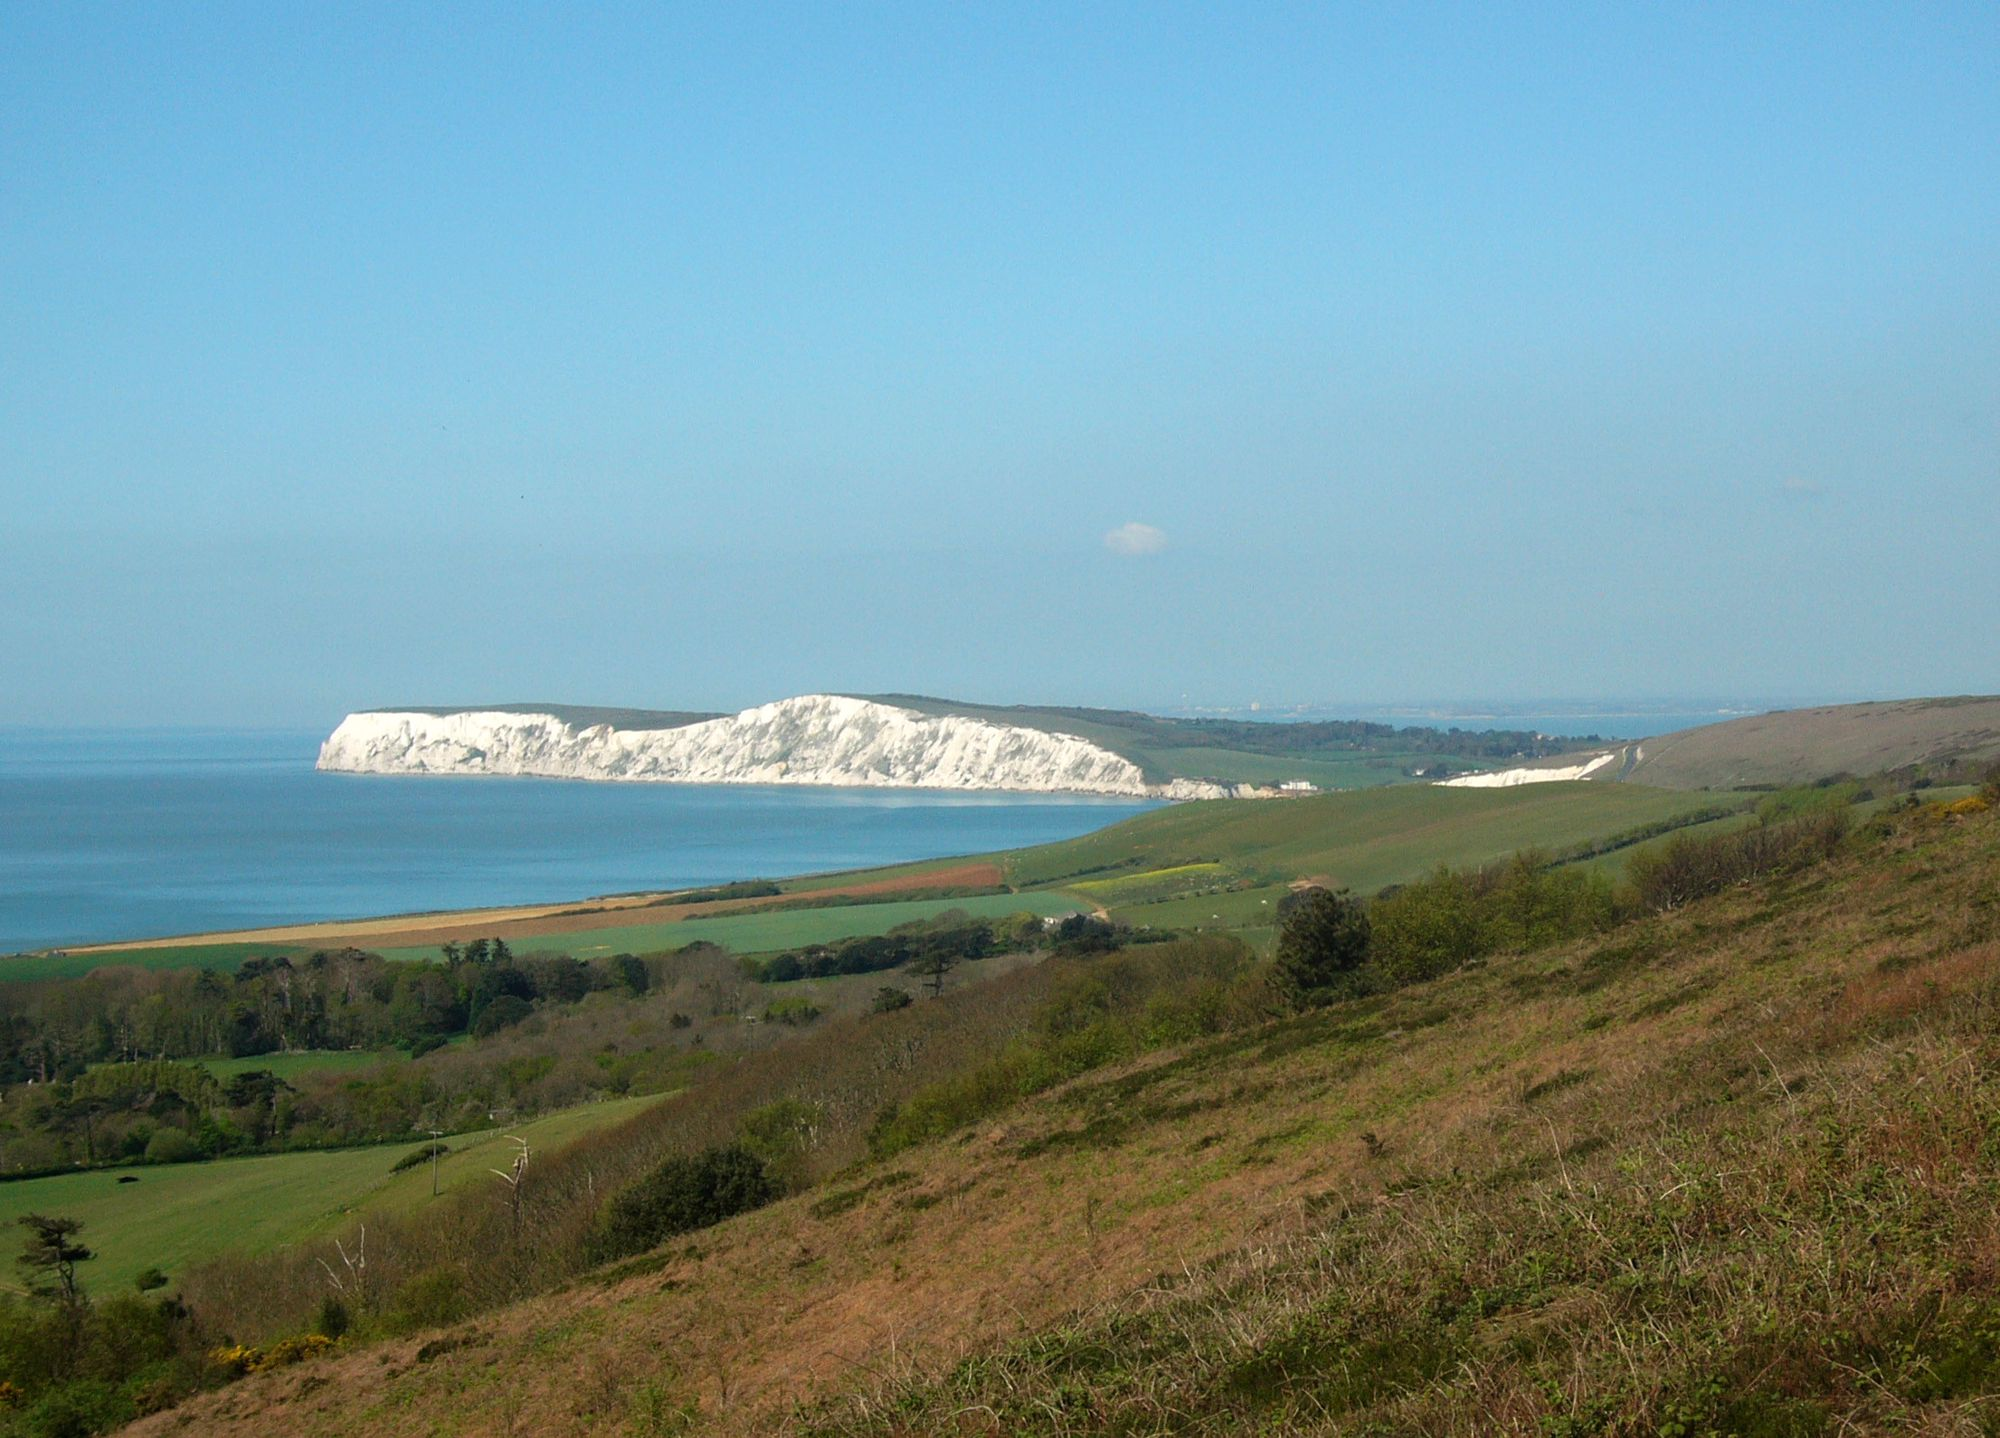 Hotels, Cottages, B&Bs & Glamping in the Isle of Wight